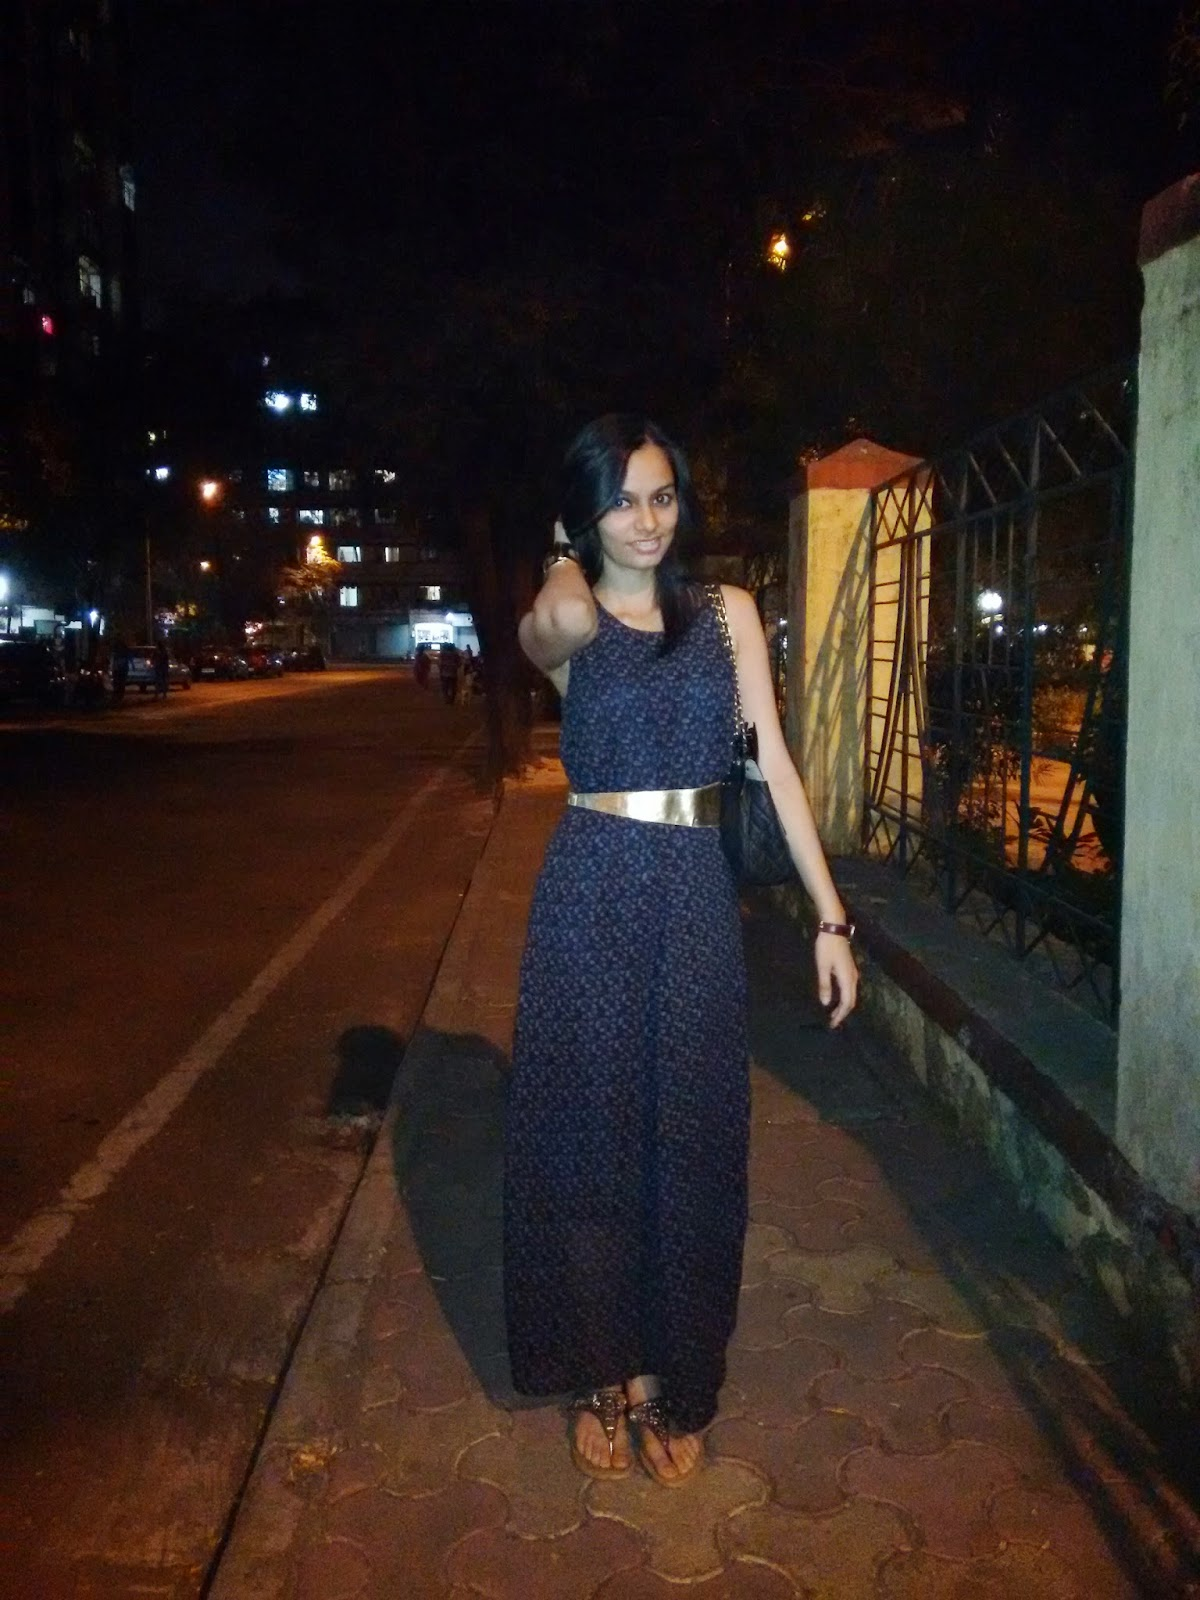 maxi dress, how to wear a maxi dress, dinner outfit ideas, date night outfit, gold accessories, gold accents, how to wear a gold belt, mumbai streetstyle, vero moda maxi, maxi dress style, mumbai fashion blogger, indian fashion blogger